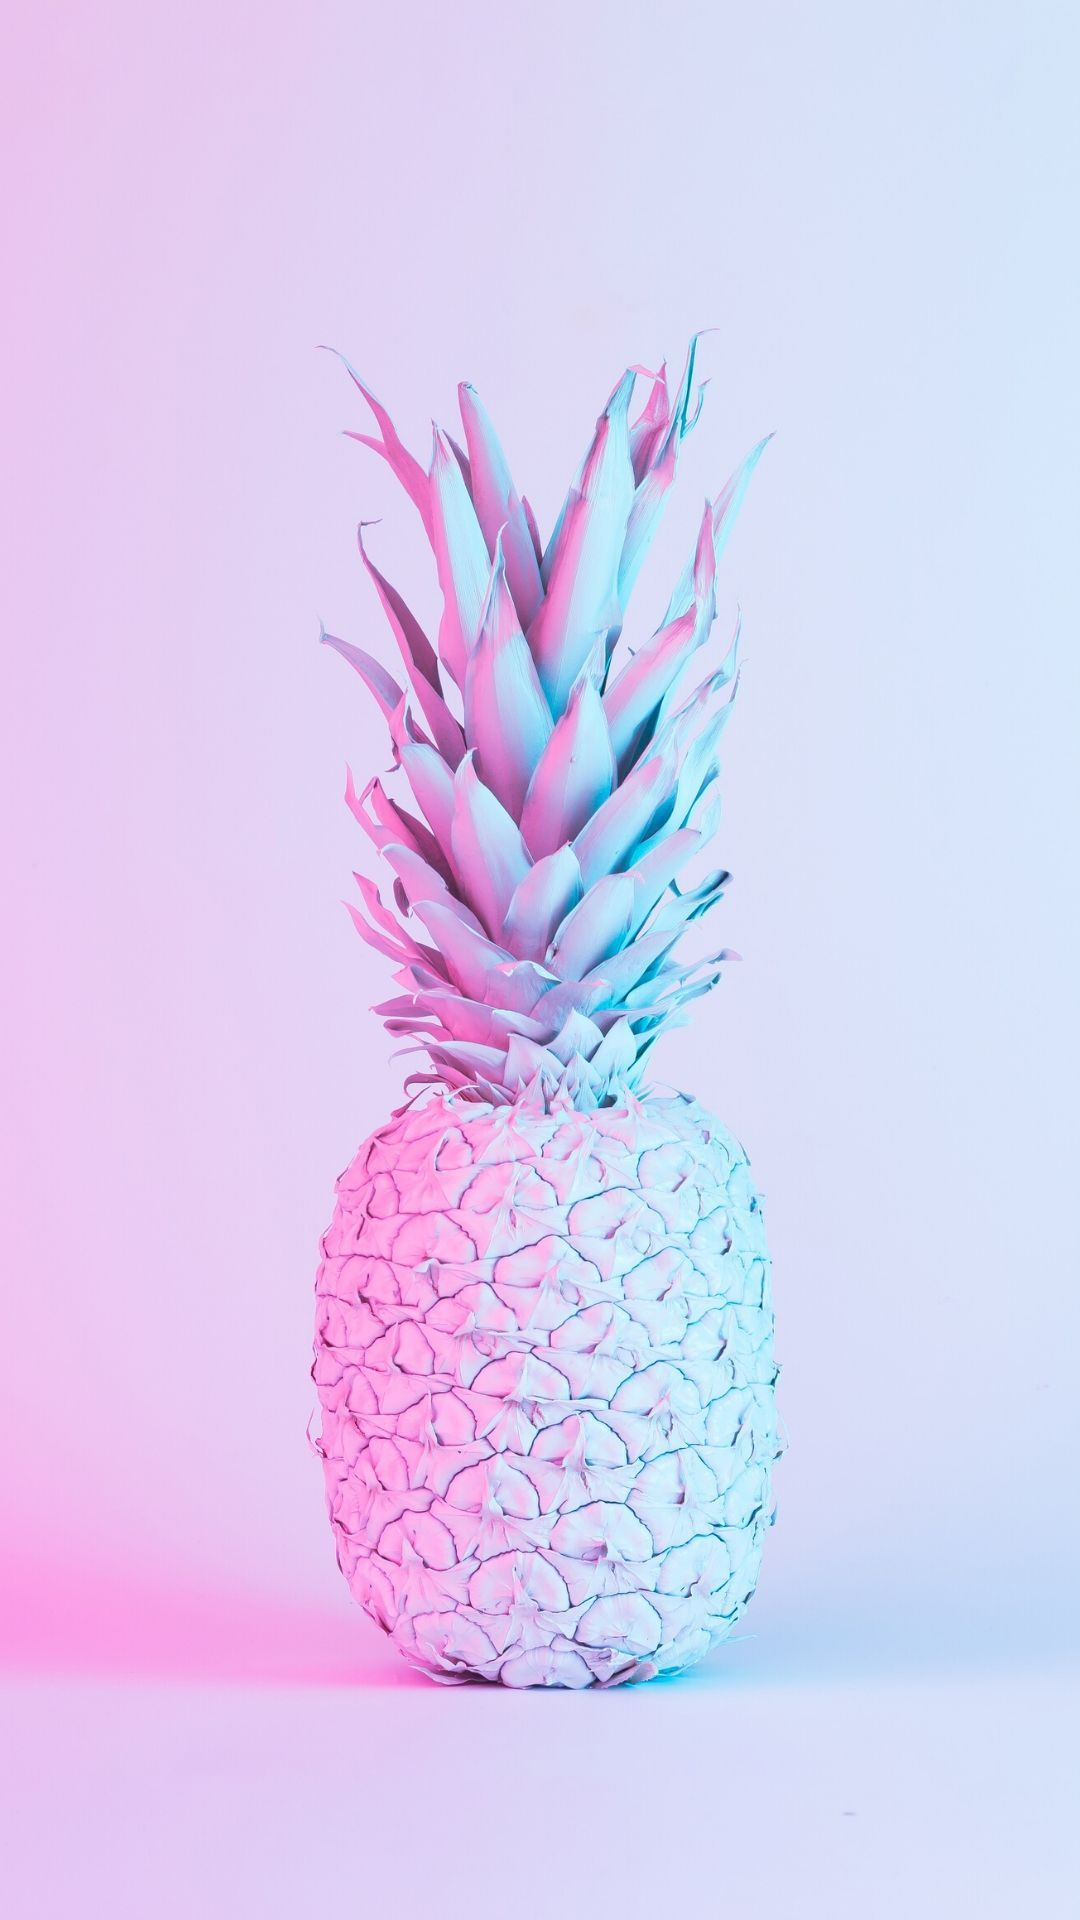 35 Pineapple Wallpaper for iPhone [Free Downloads] 4K